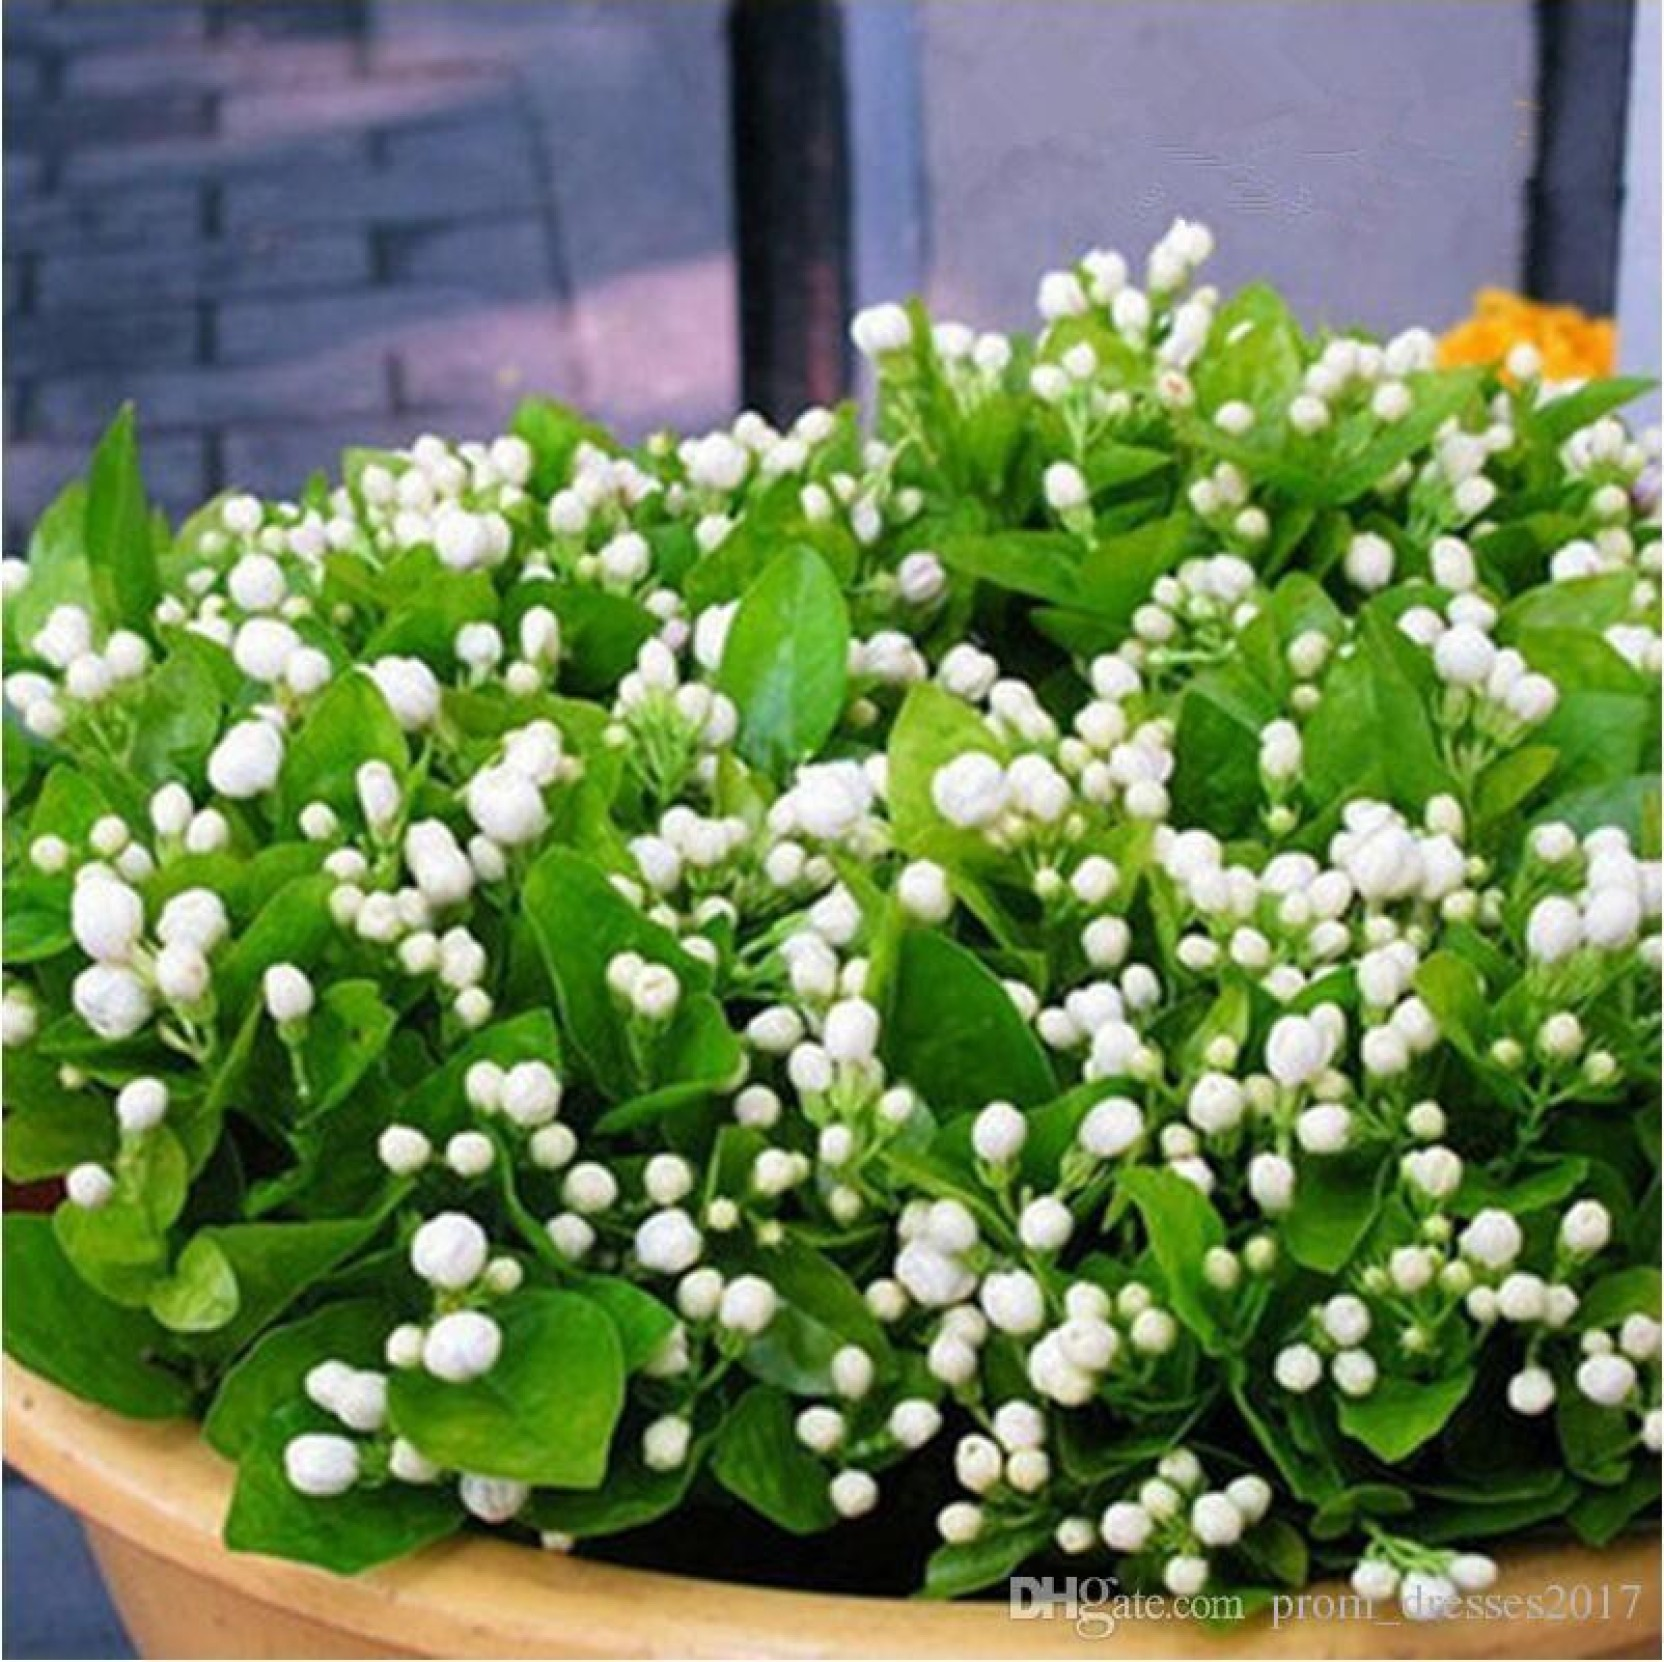 Nskon imported worlds rare bonsai jasmine flower plant seed price in jasmine flower plant seed add to cart izmirmasajfo